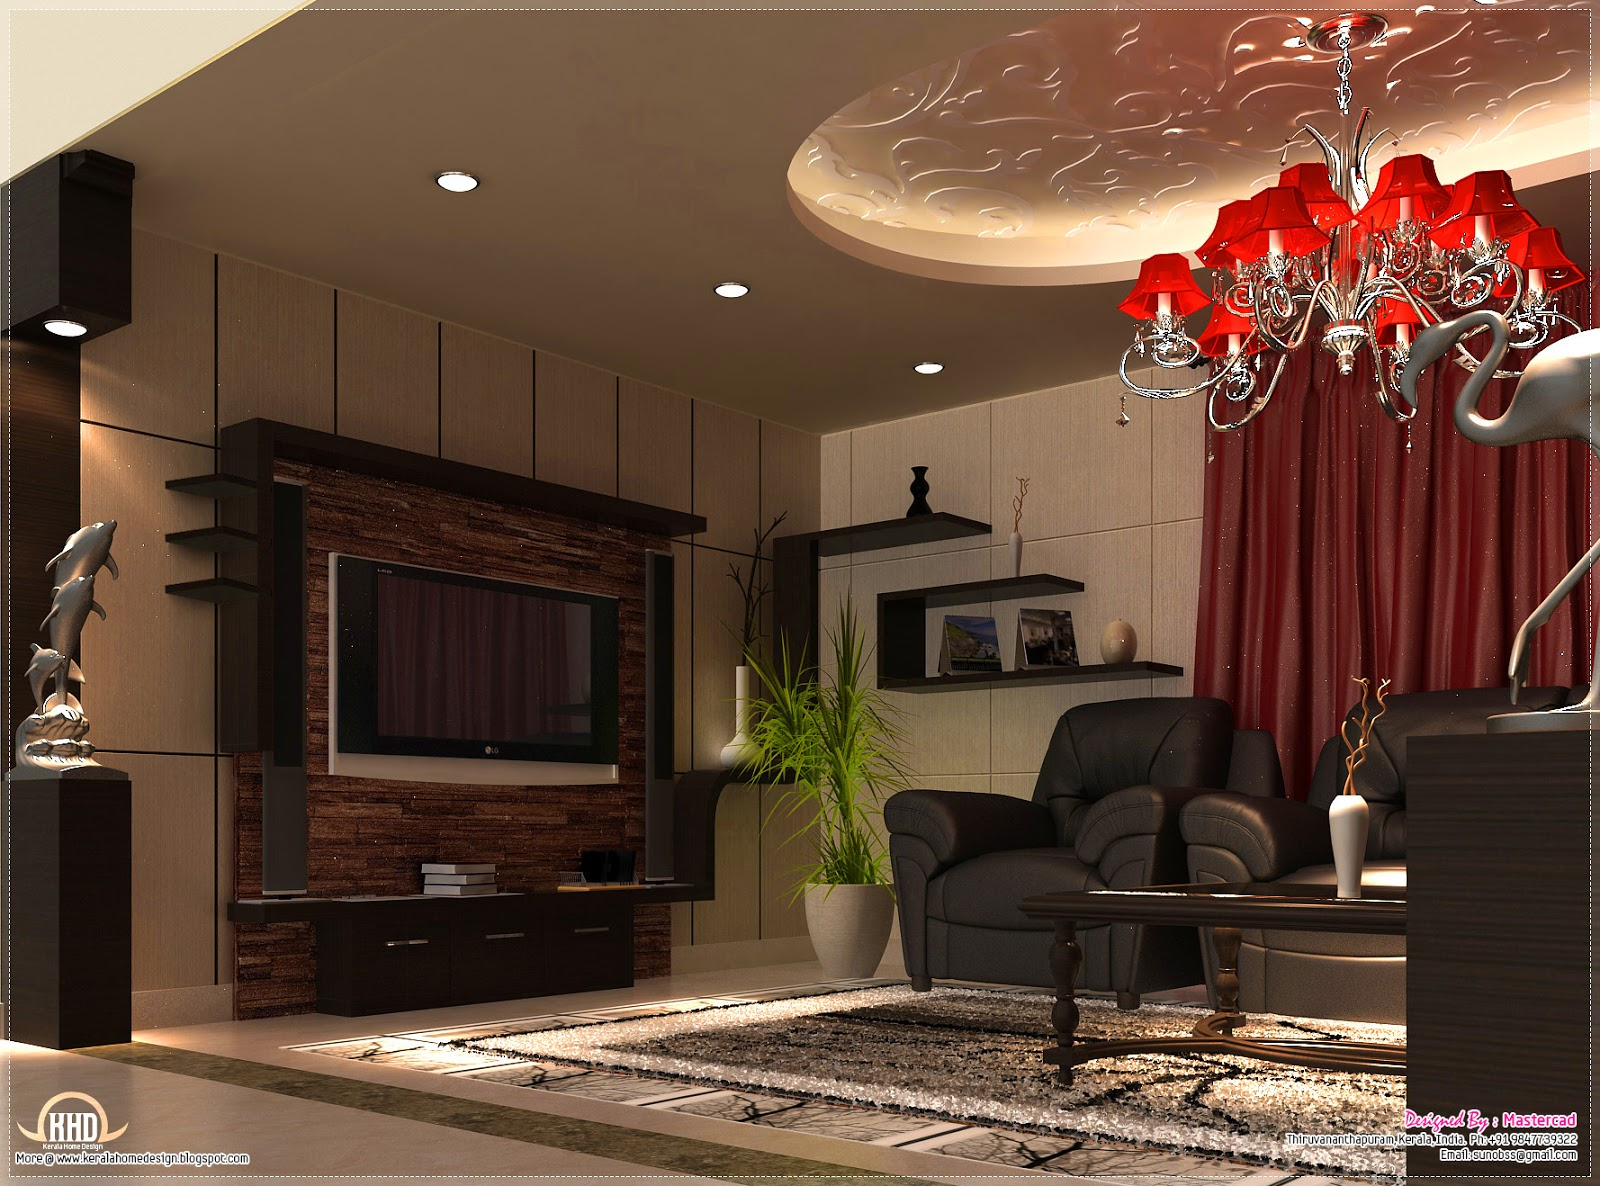 Interior design ideas kerala home design and floor plans for Kerala home living room designs